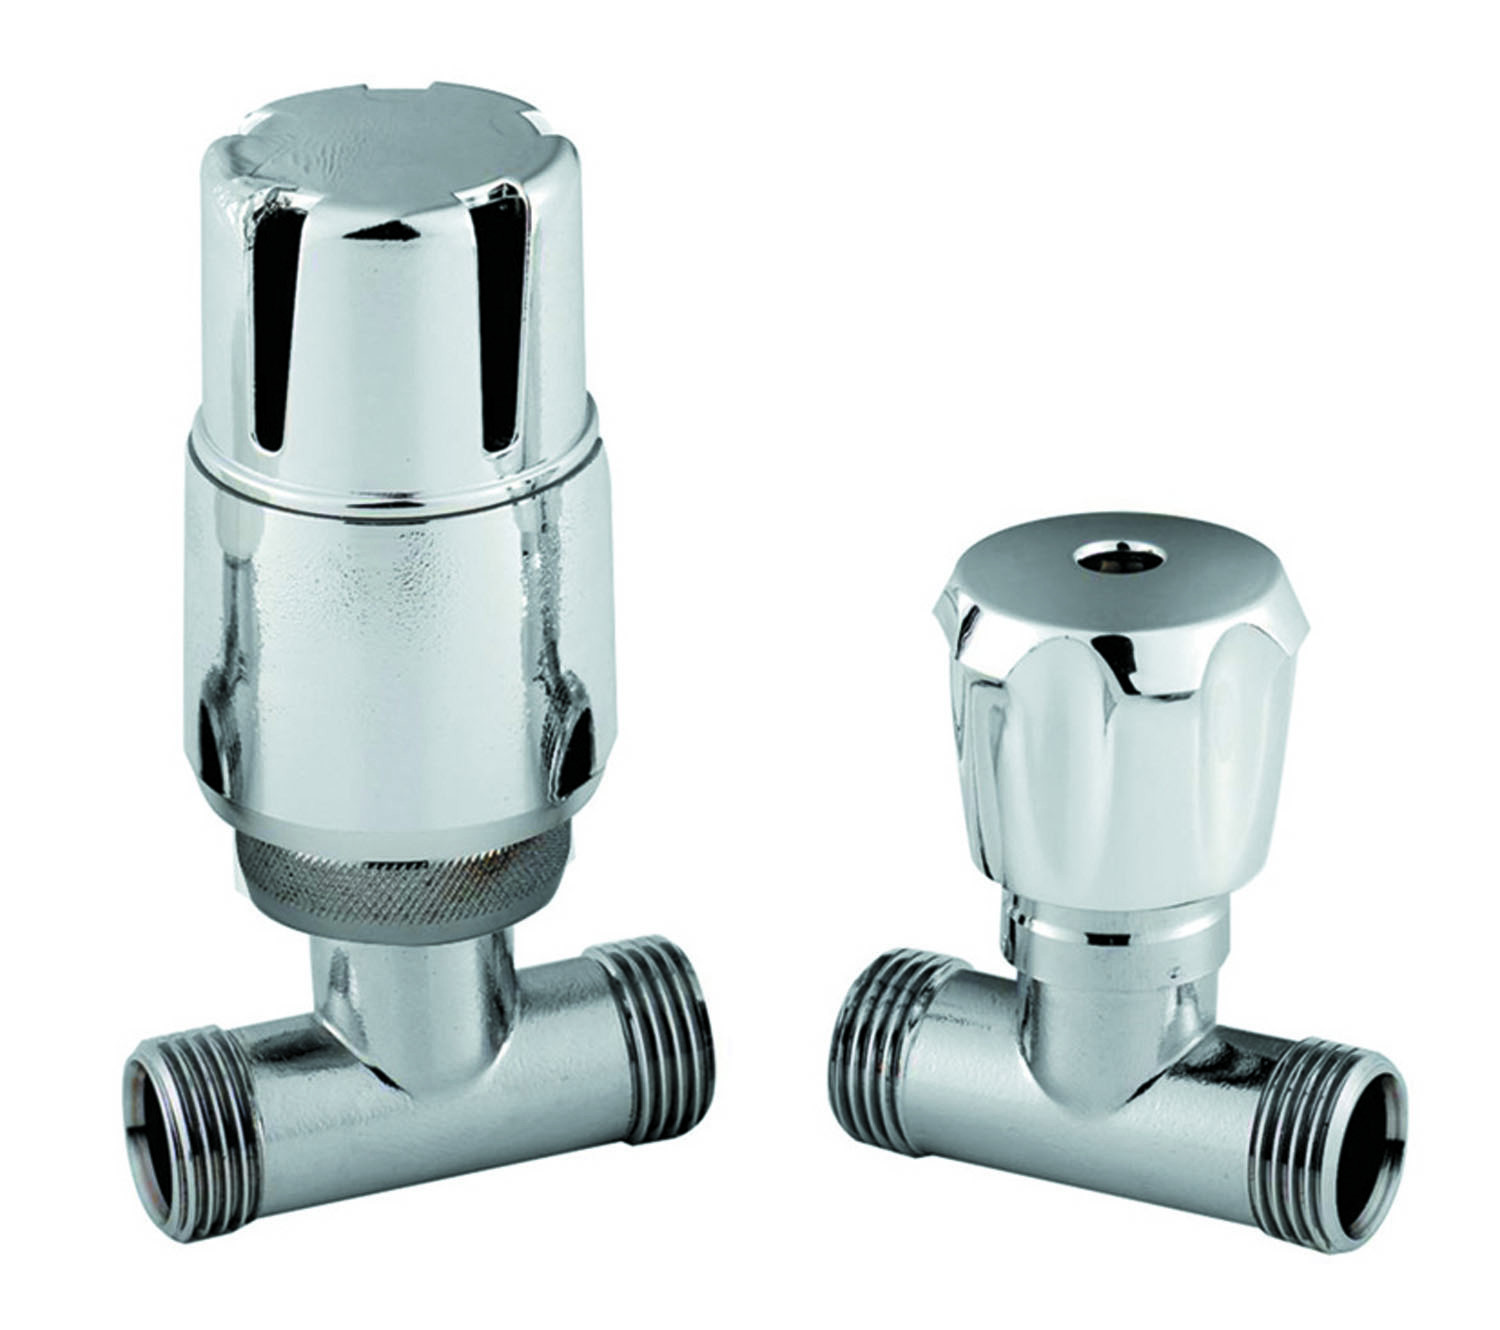 Straight Thermostatic Lockshield Radiator Valves